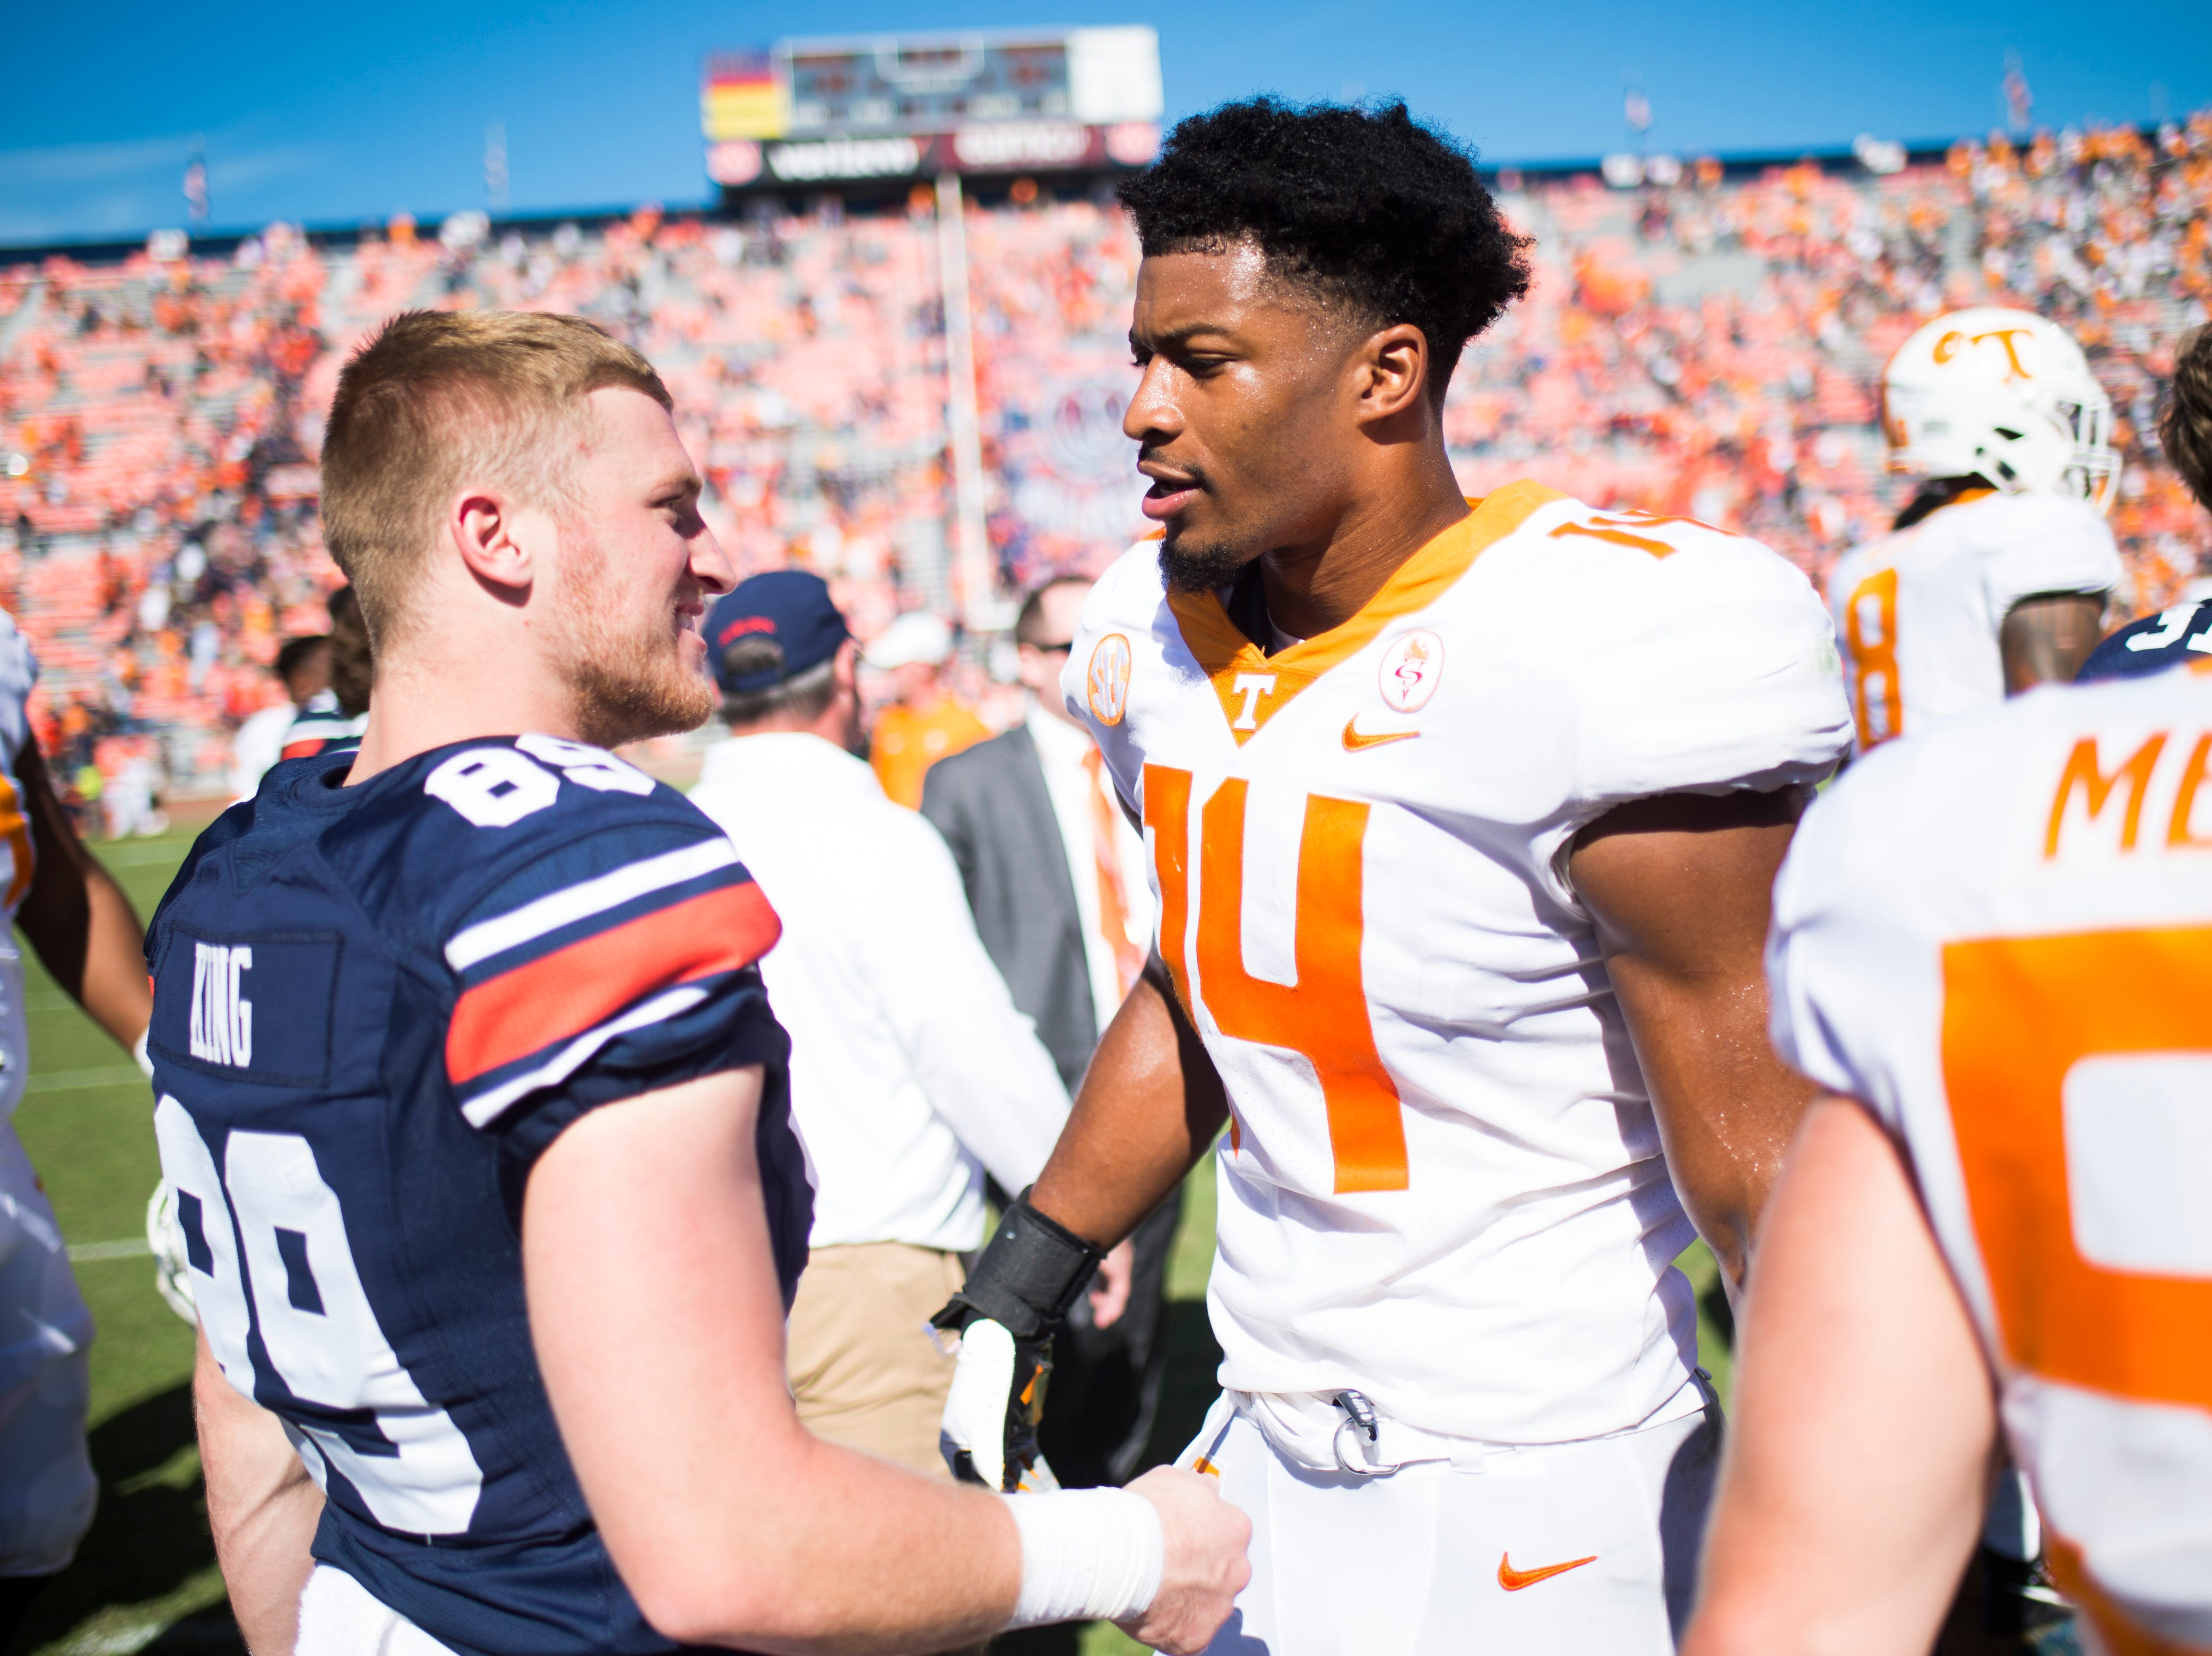 Auburn wide receiver Griffin King (89) and  Tennessee linebacker Quart'e Sapp (14) shake hands during a game between Tennessee and Auburn at Jordan-Hare Stadium in Auburn, Alabama on Saturday, October 13, 2018.